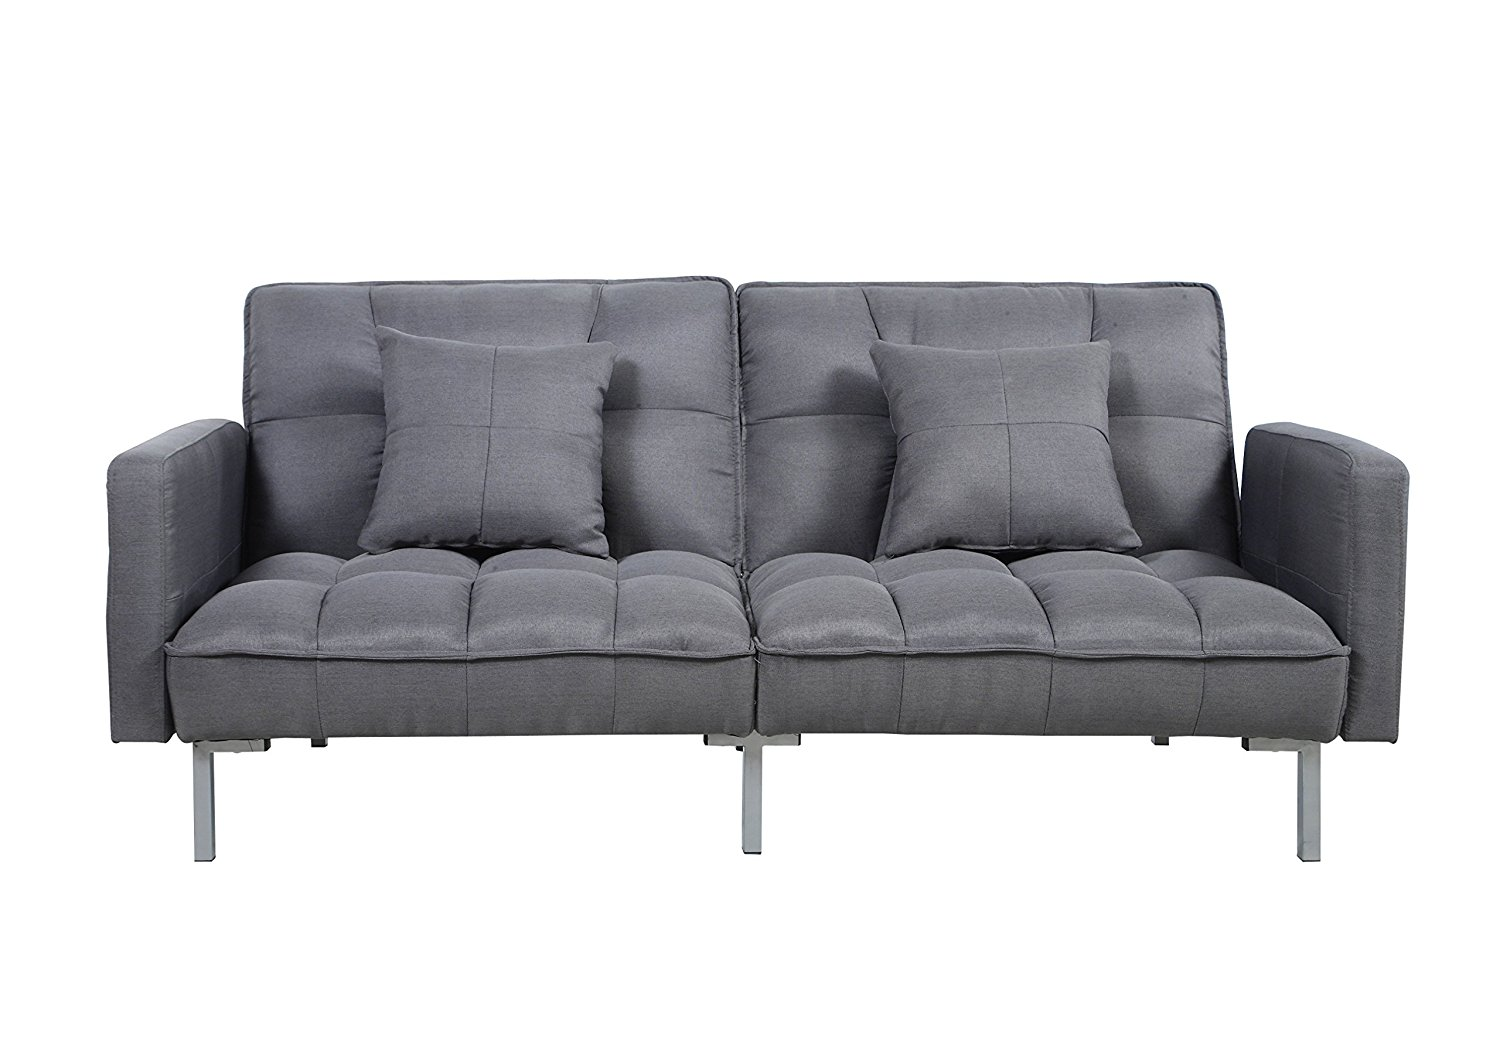 This is a stylish and high quality sofa from Divano Roma